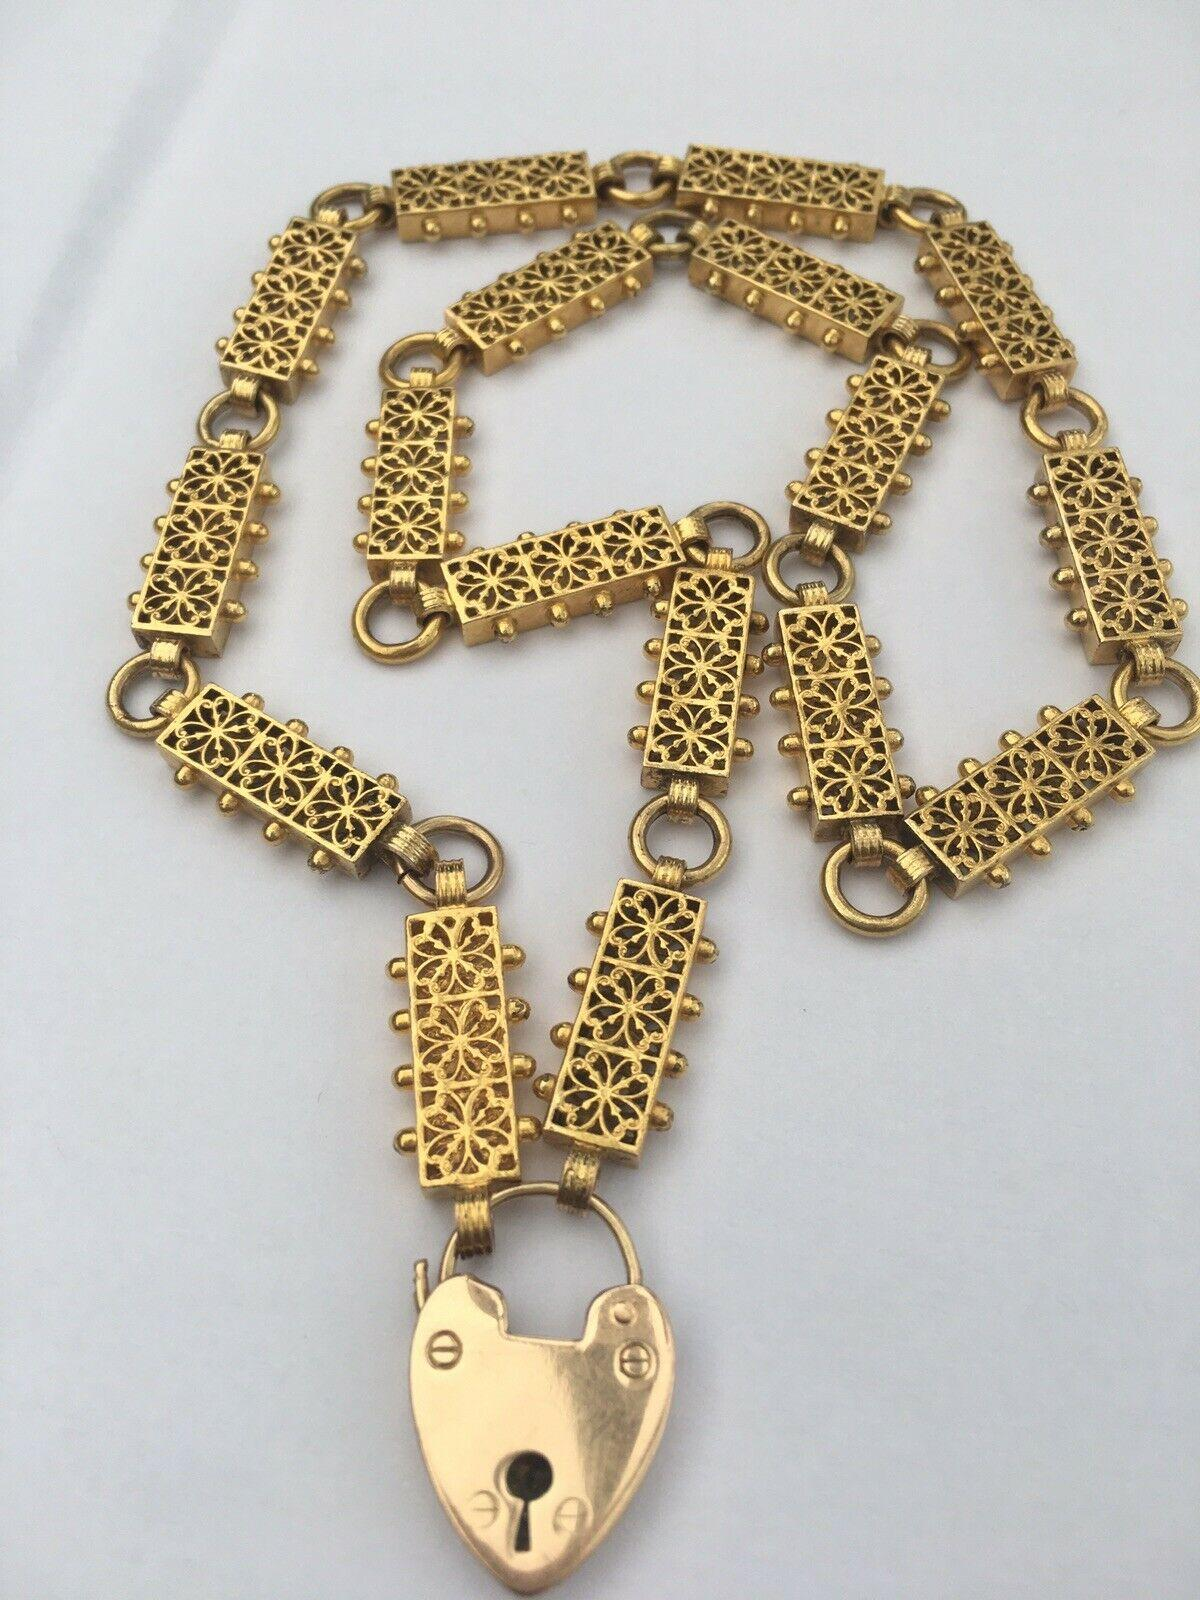 Antique Victorian 15ct Gold Locket Book Chain Necklace Padlock Etruscan Revival